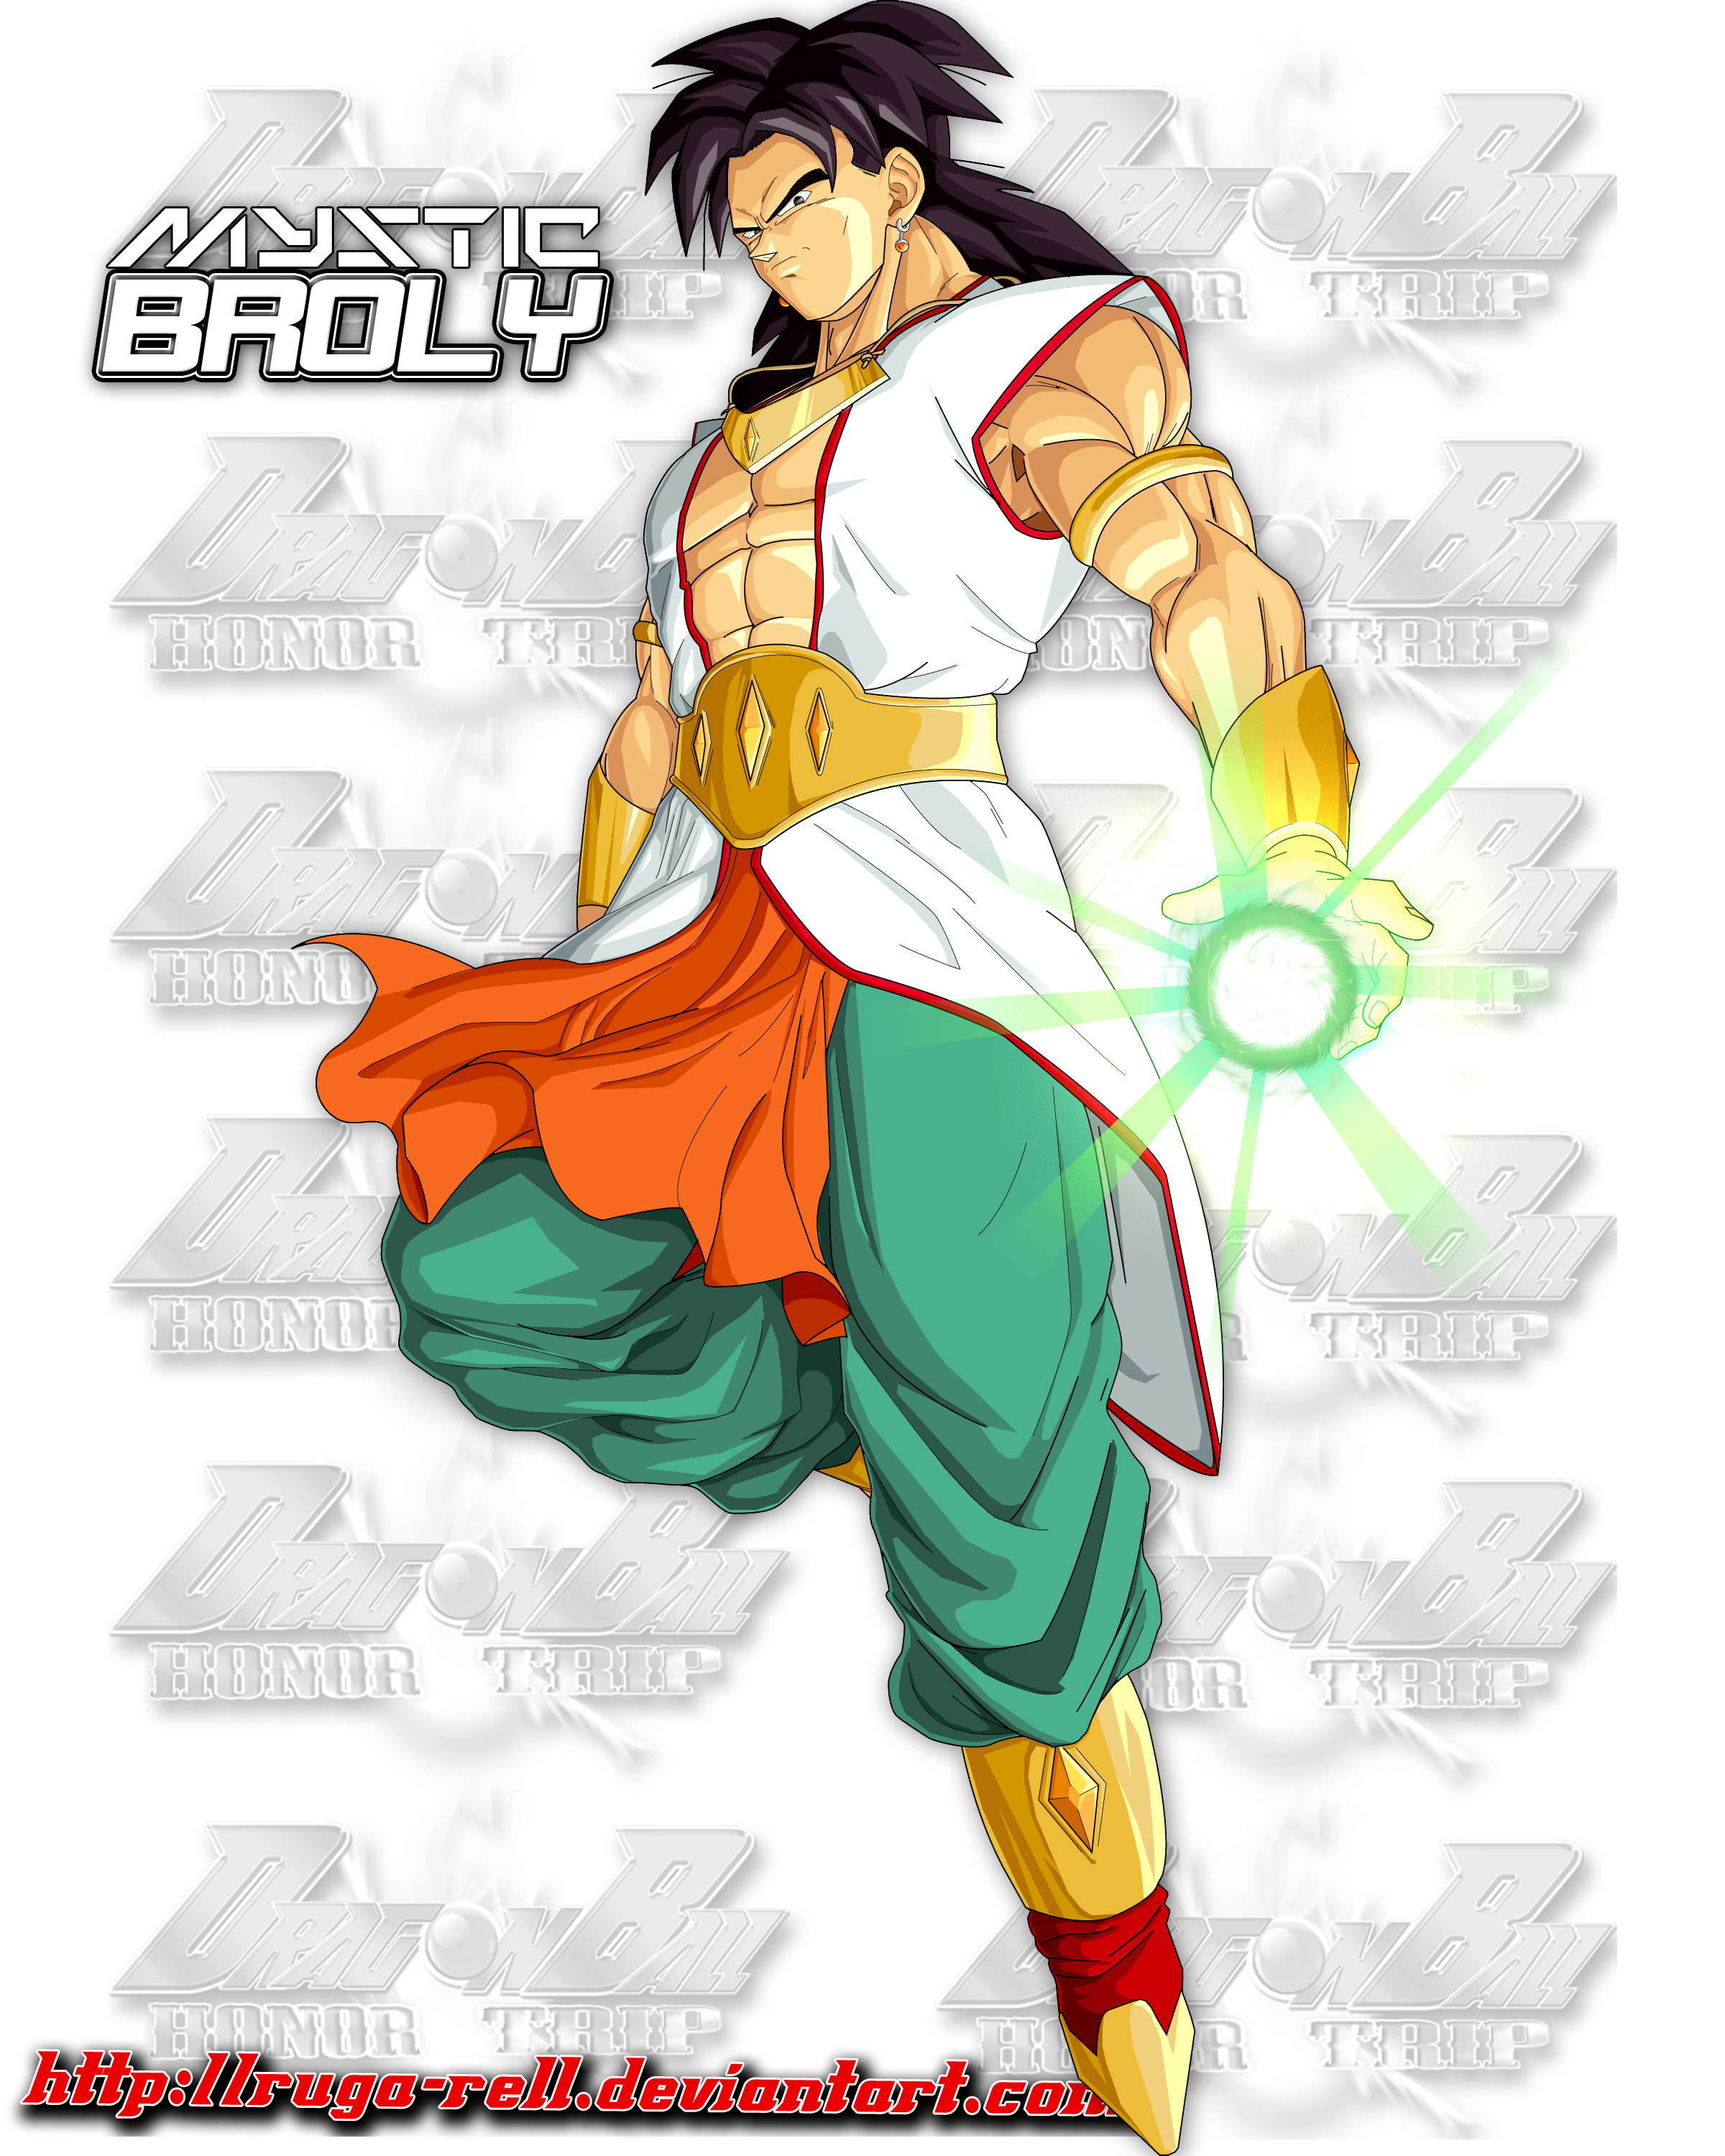 MYSTIC BROLY Mystic_broly___concept_art_for_honor_trip__s_future_by_americanvigor-d5df655